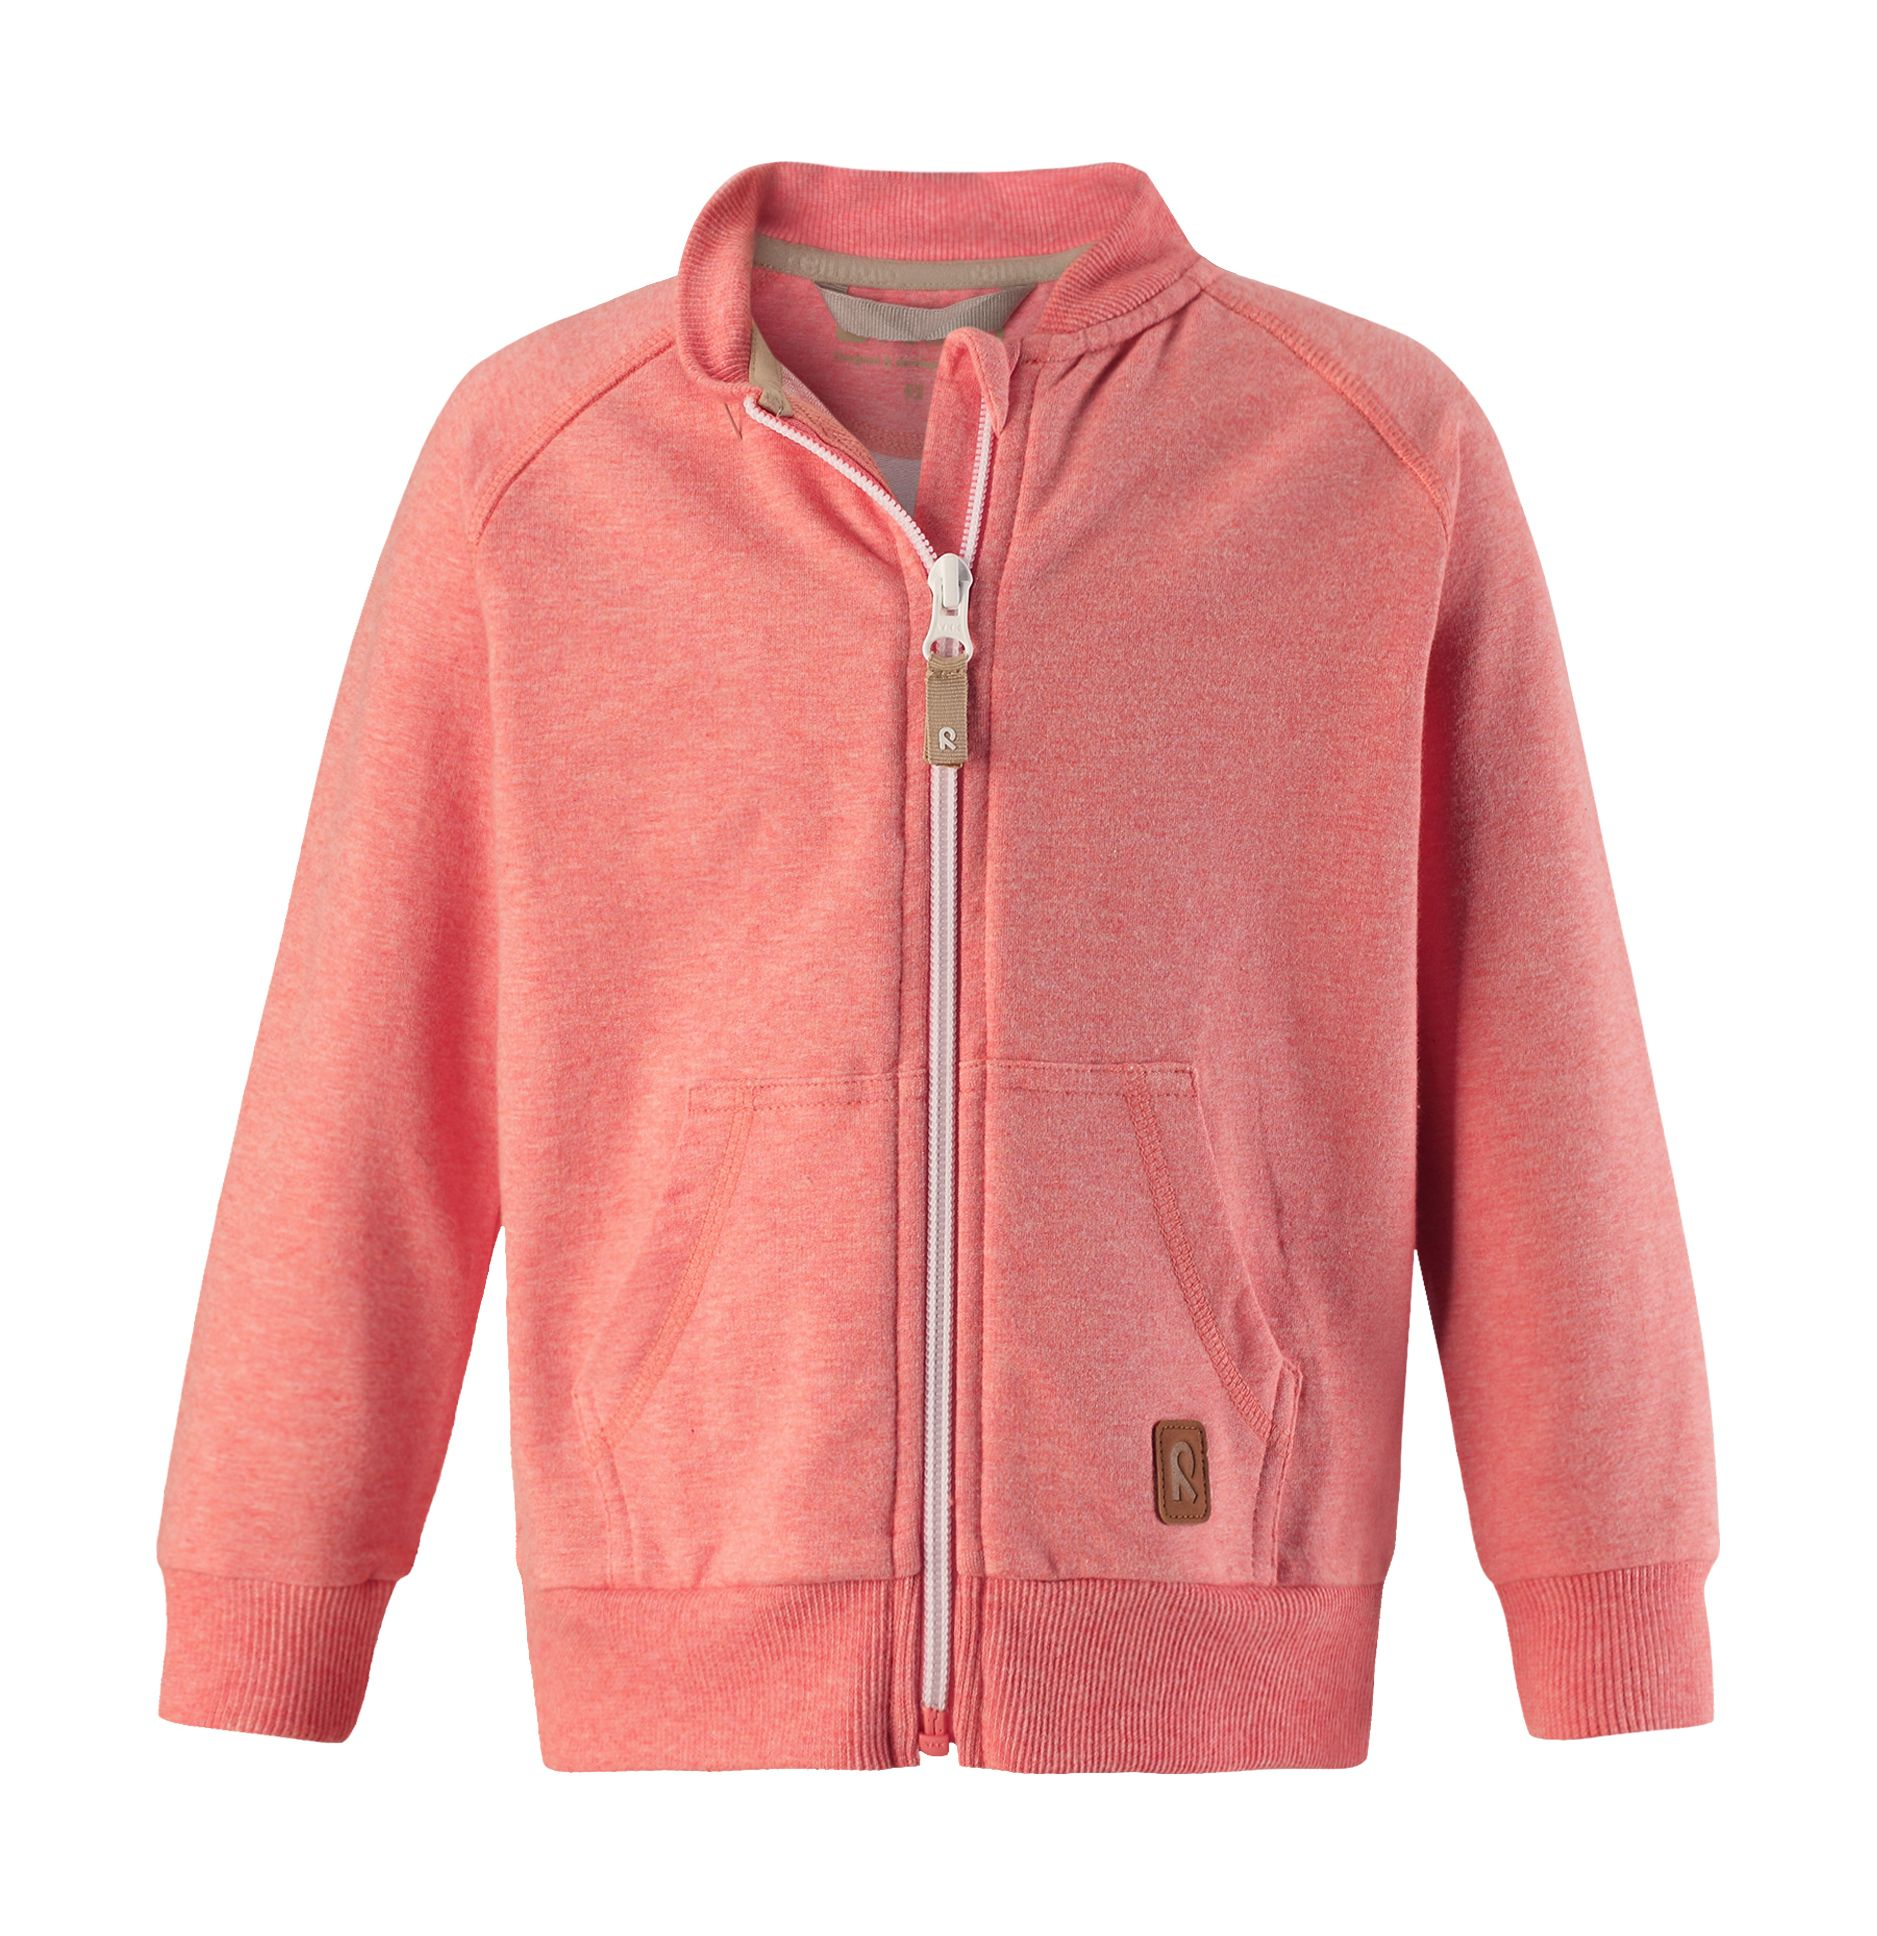 REIMA Toutain Coral Pink 92